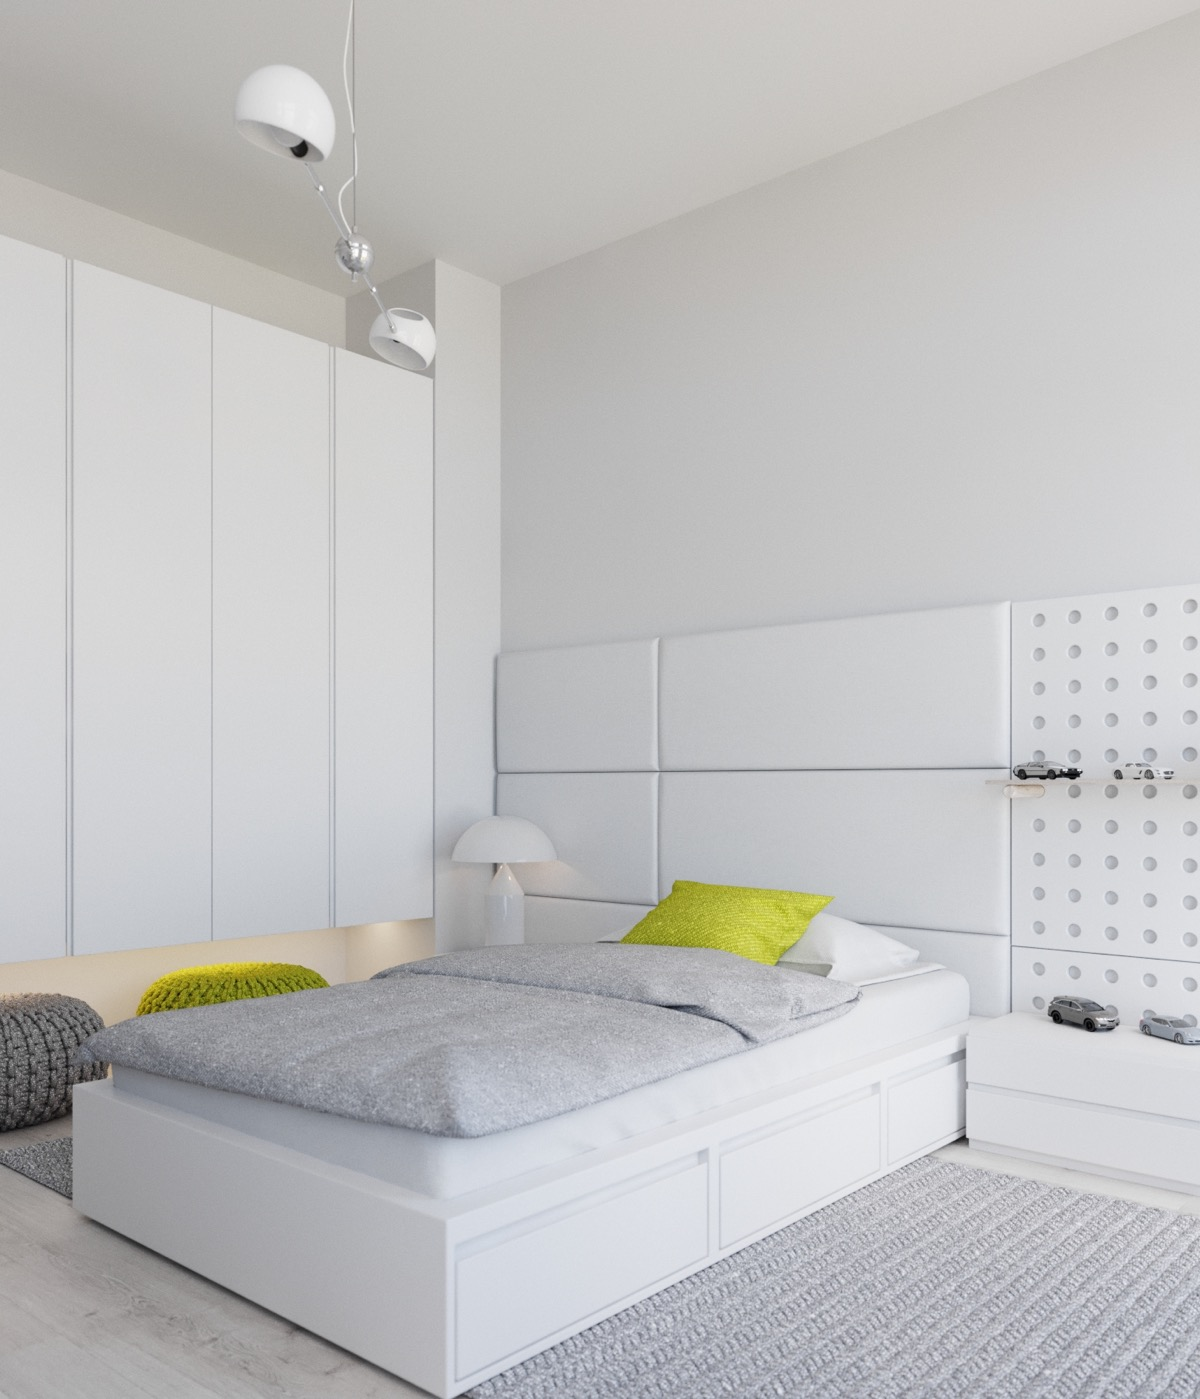 Luxury Kids' Rooms images 26